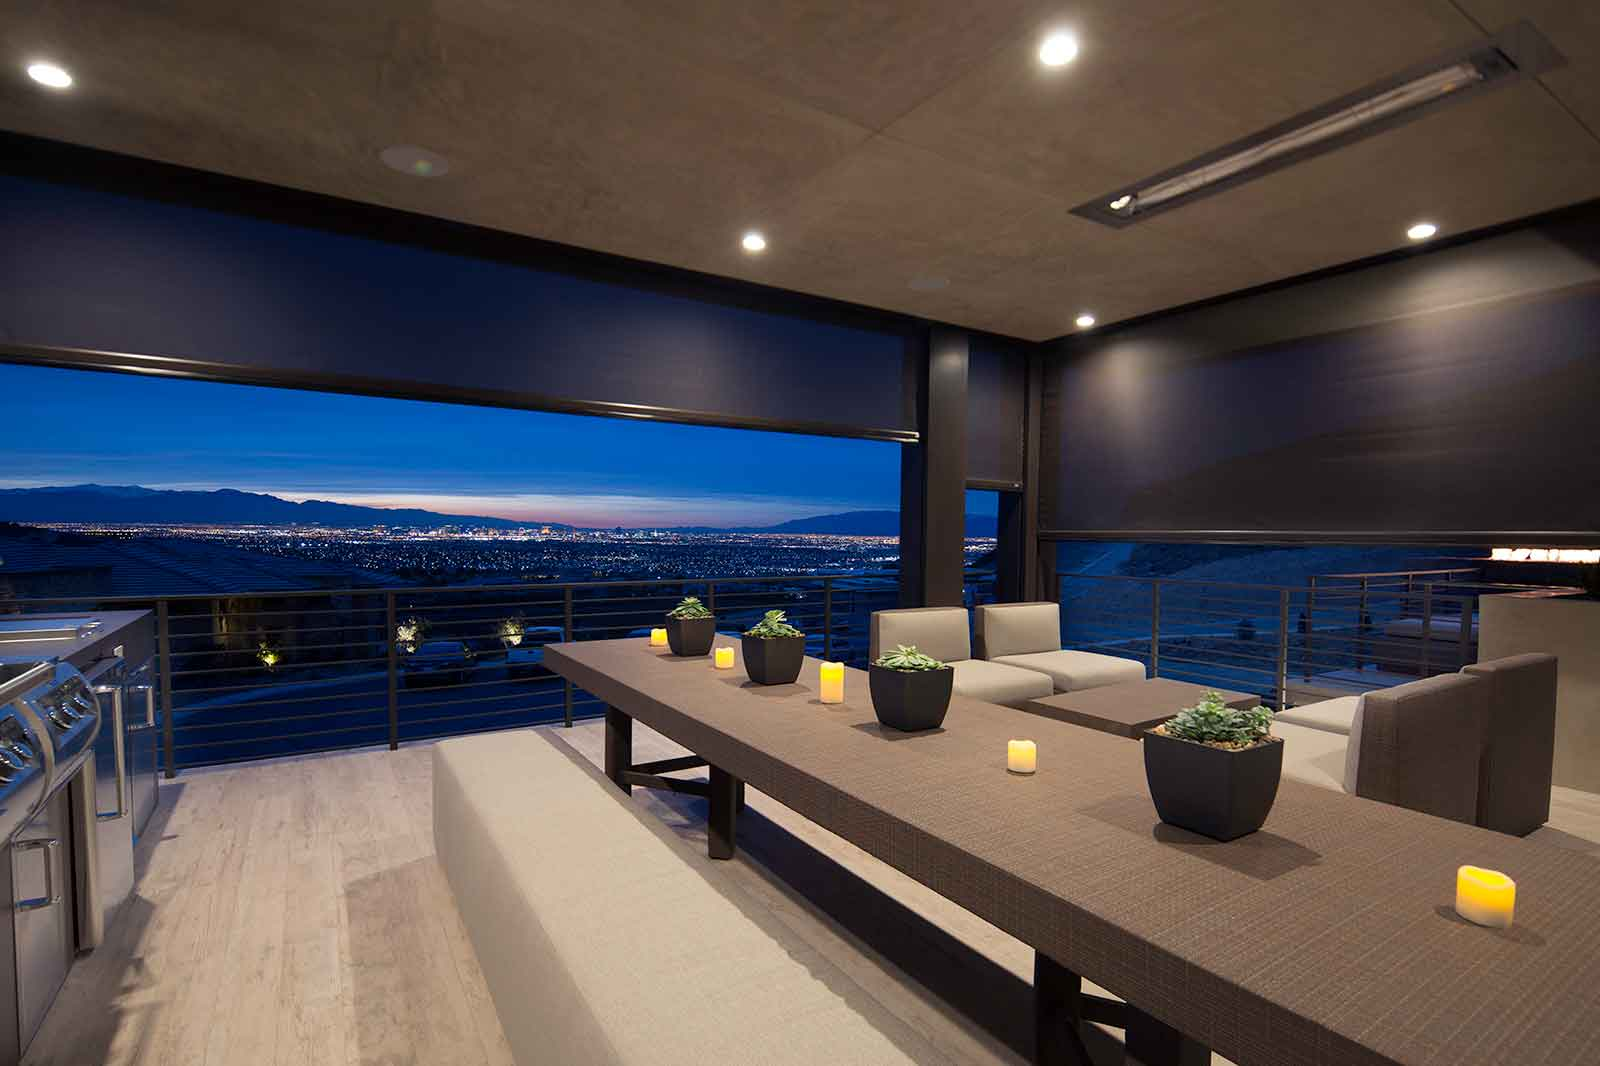 Phantom screens minnesota screens retractable screen for Retractable screen solutions